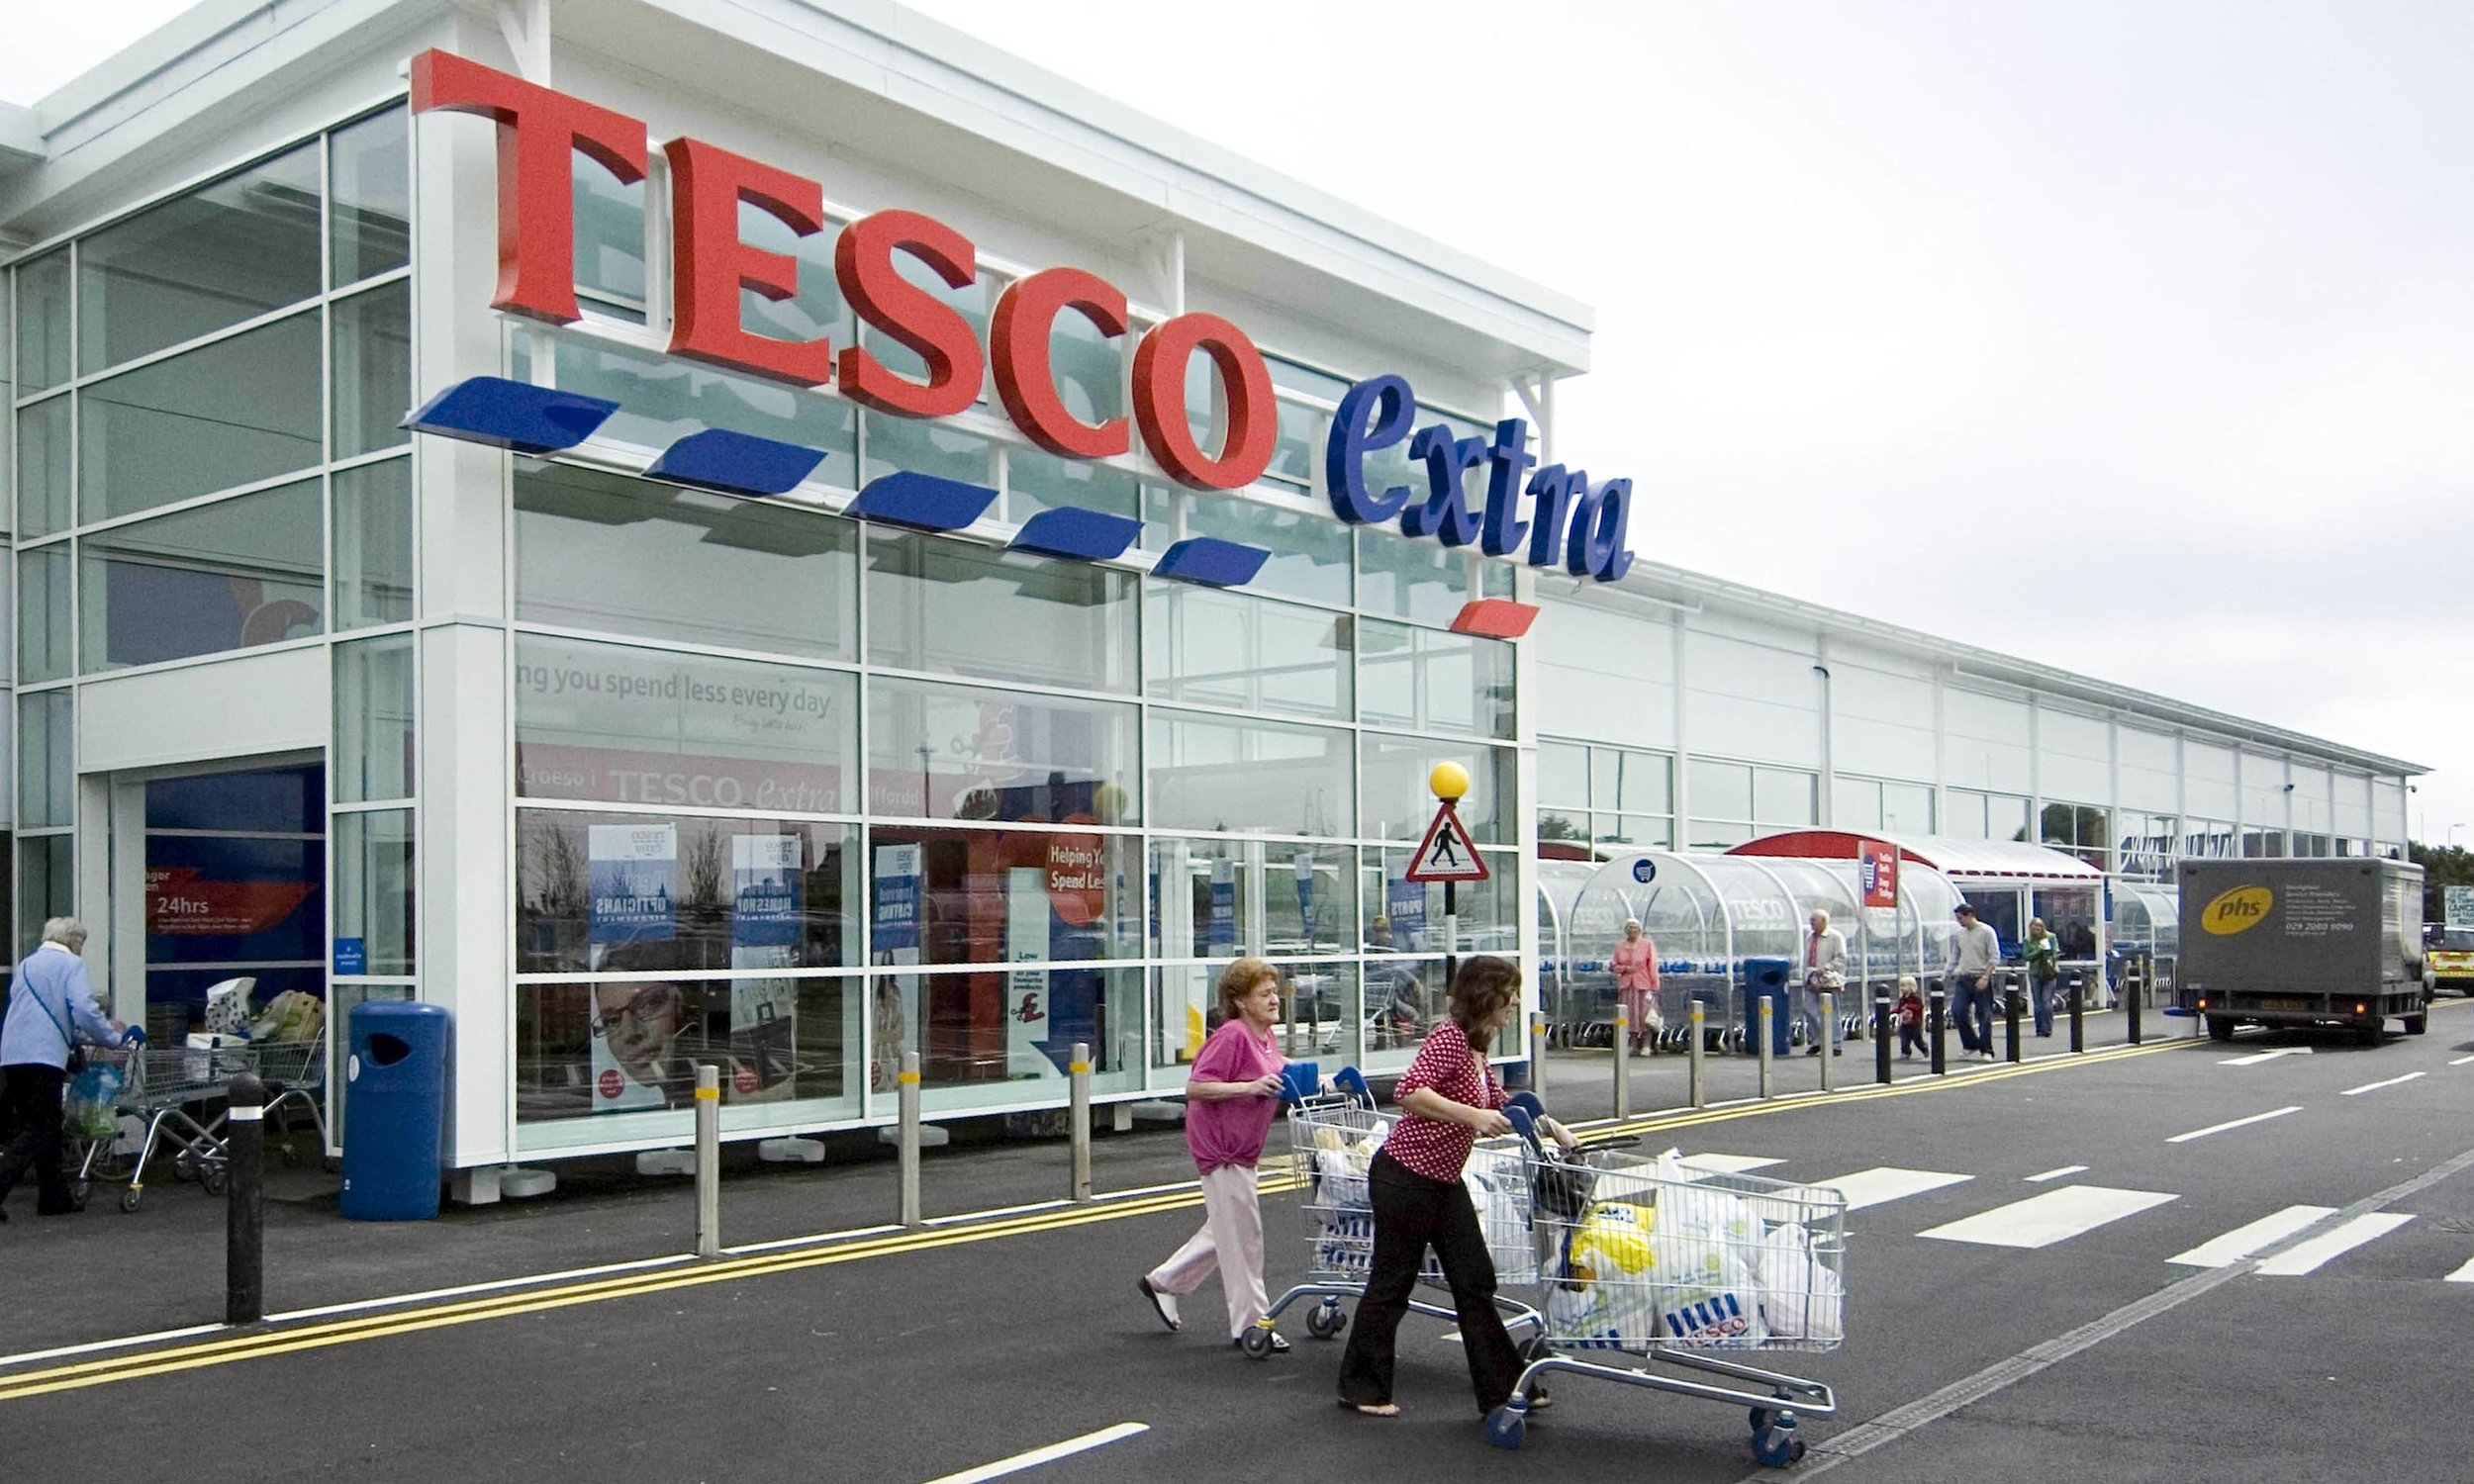 A Guide to UK Supermarket Chains - Tesco and Tesco Extra